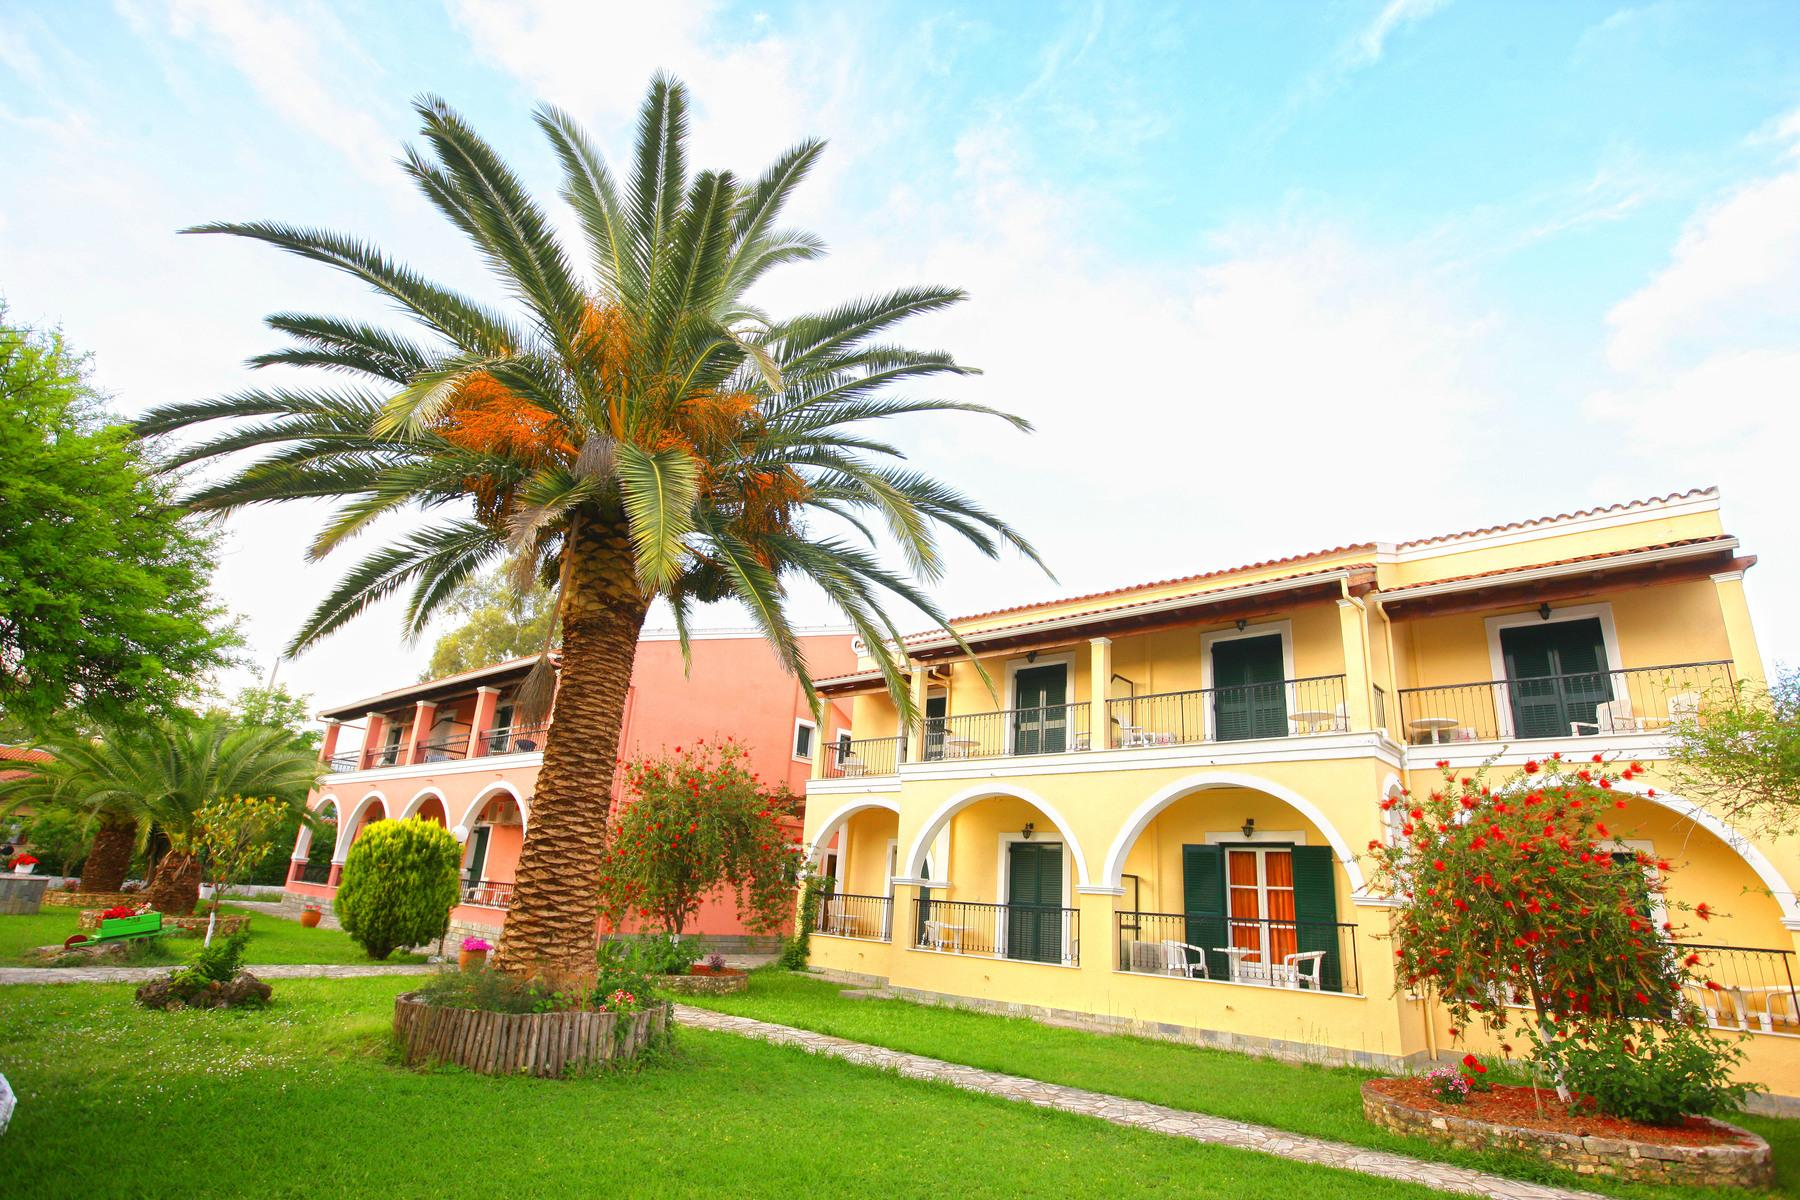 Zefiros Apartments Gouvia in Gouvia, Corfu, Greek Islands